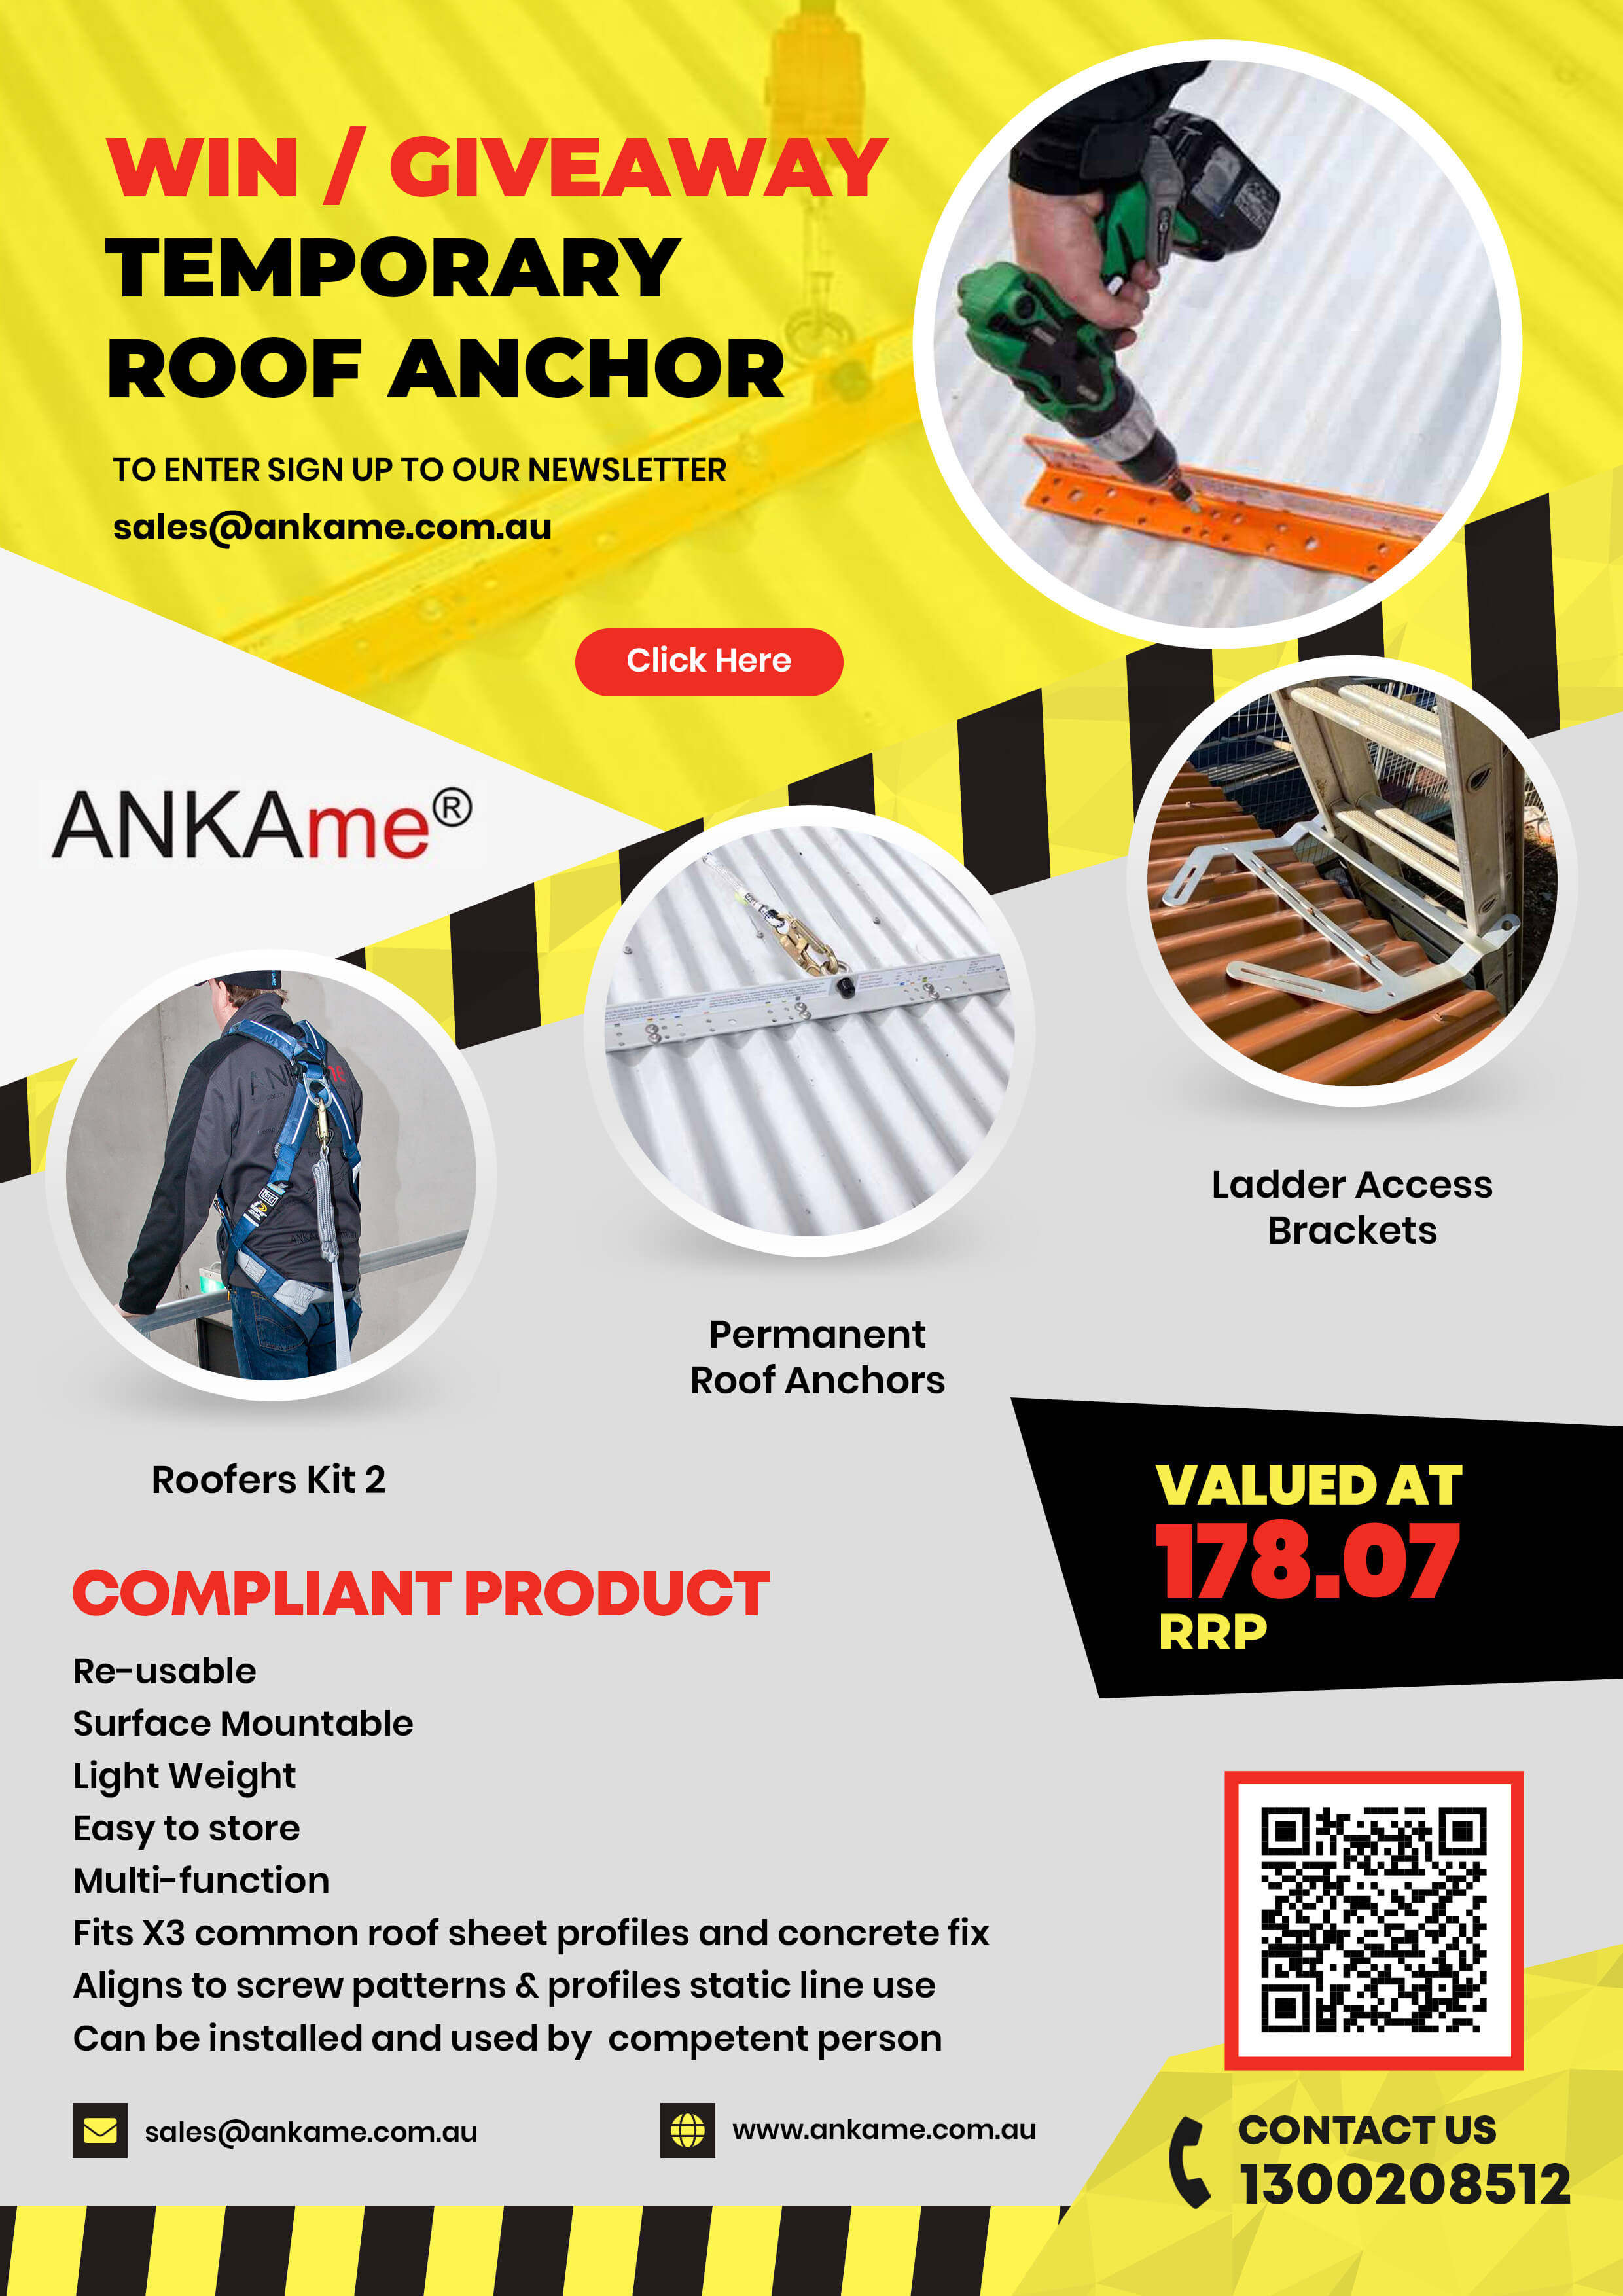 Permanent Roof Anchors